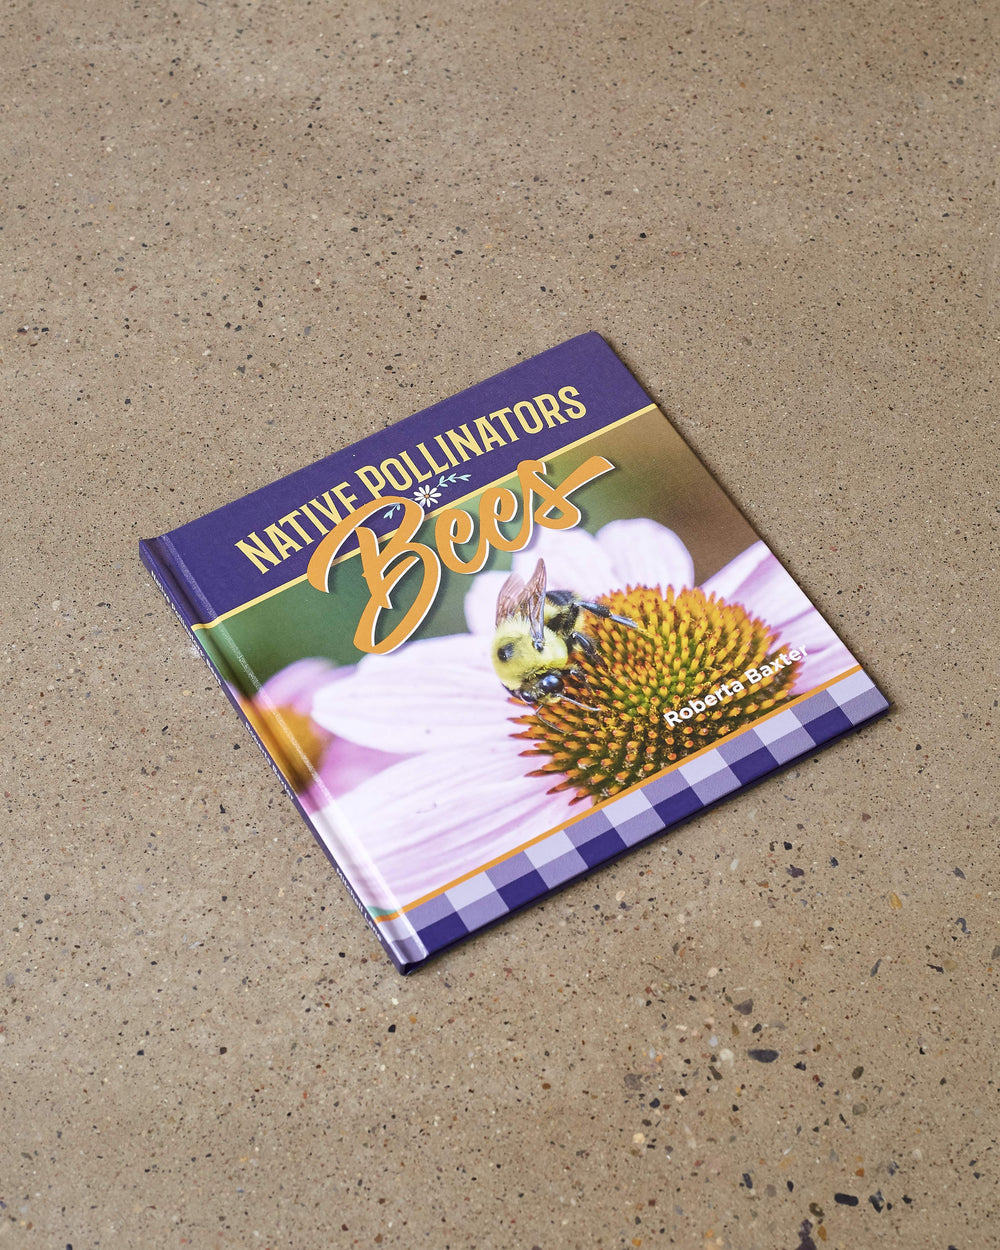 Bees - Native Pollinators - Hard Cover